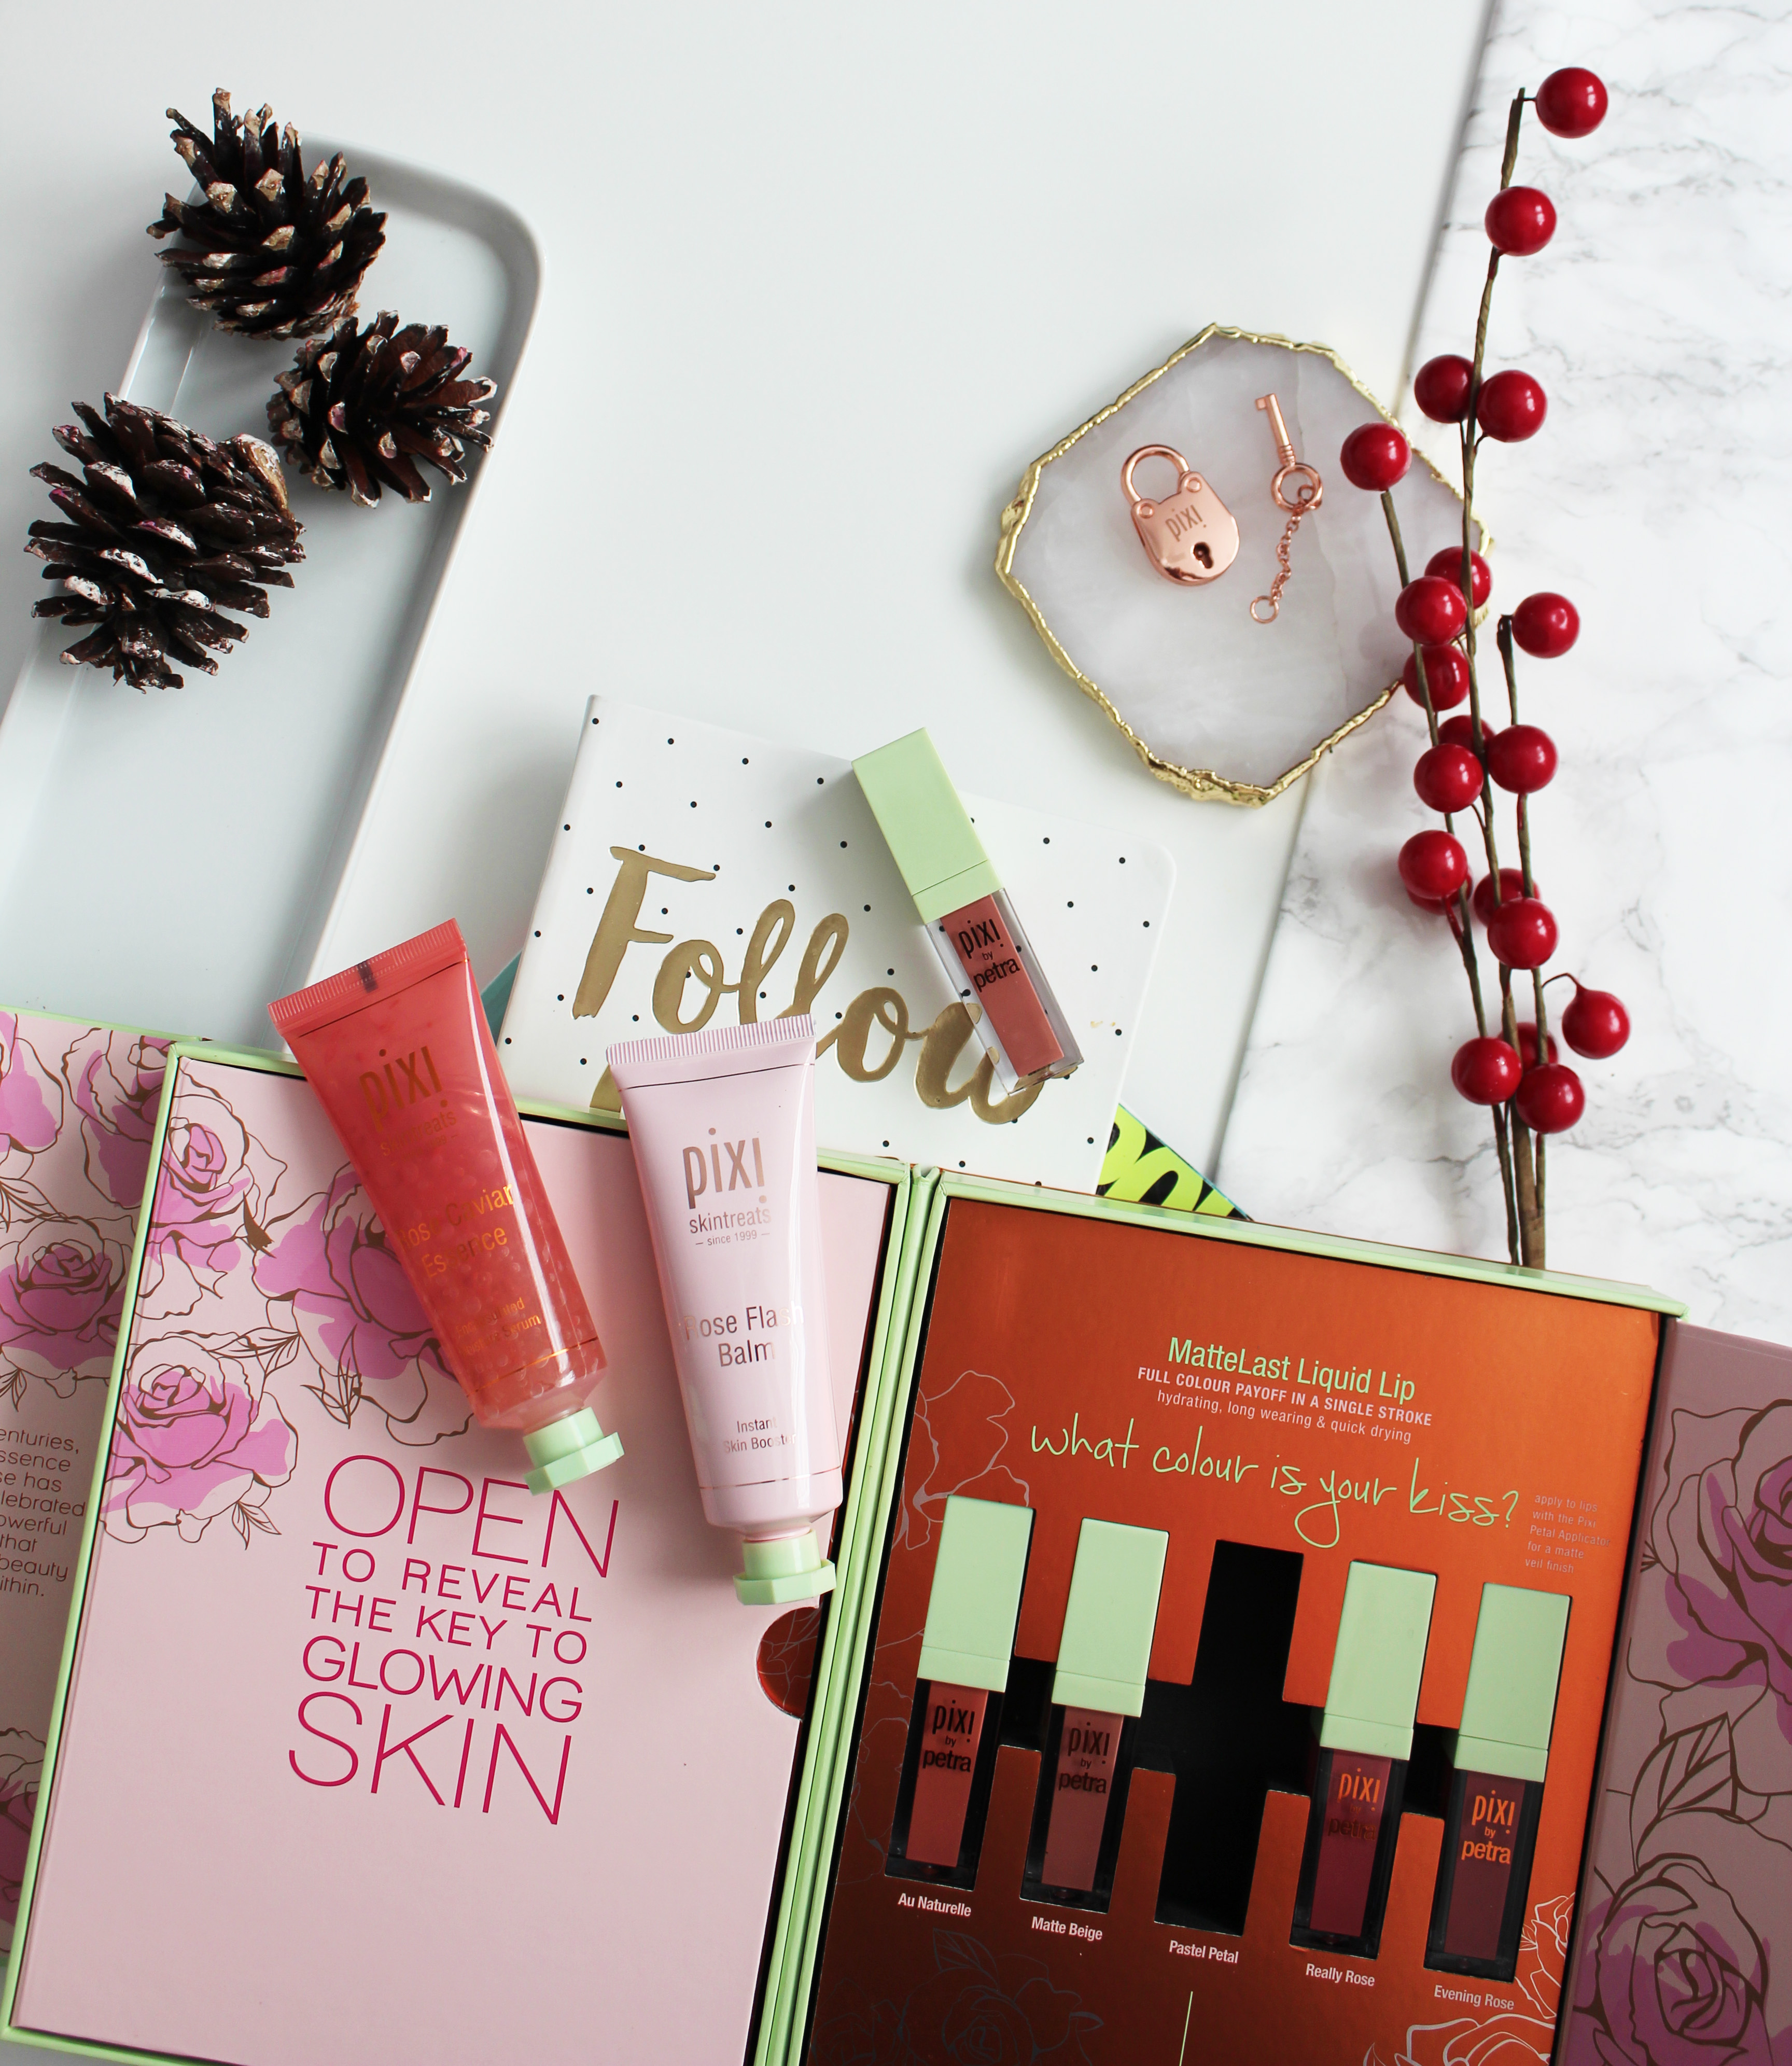 Pixi Beauty - New Launches